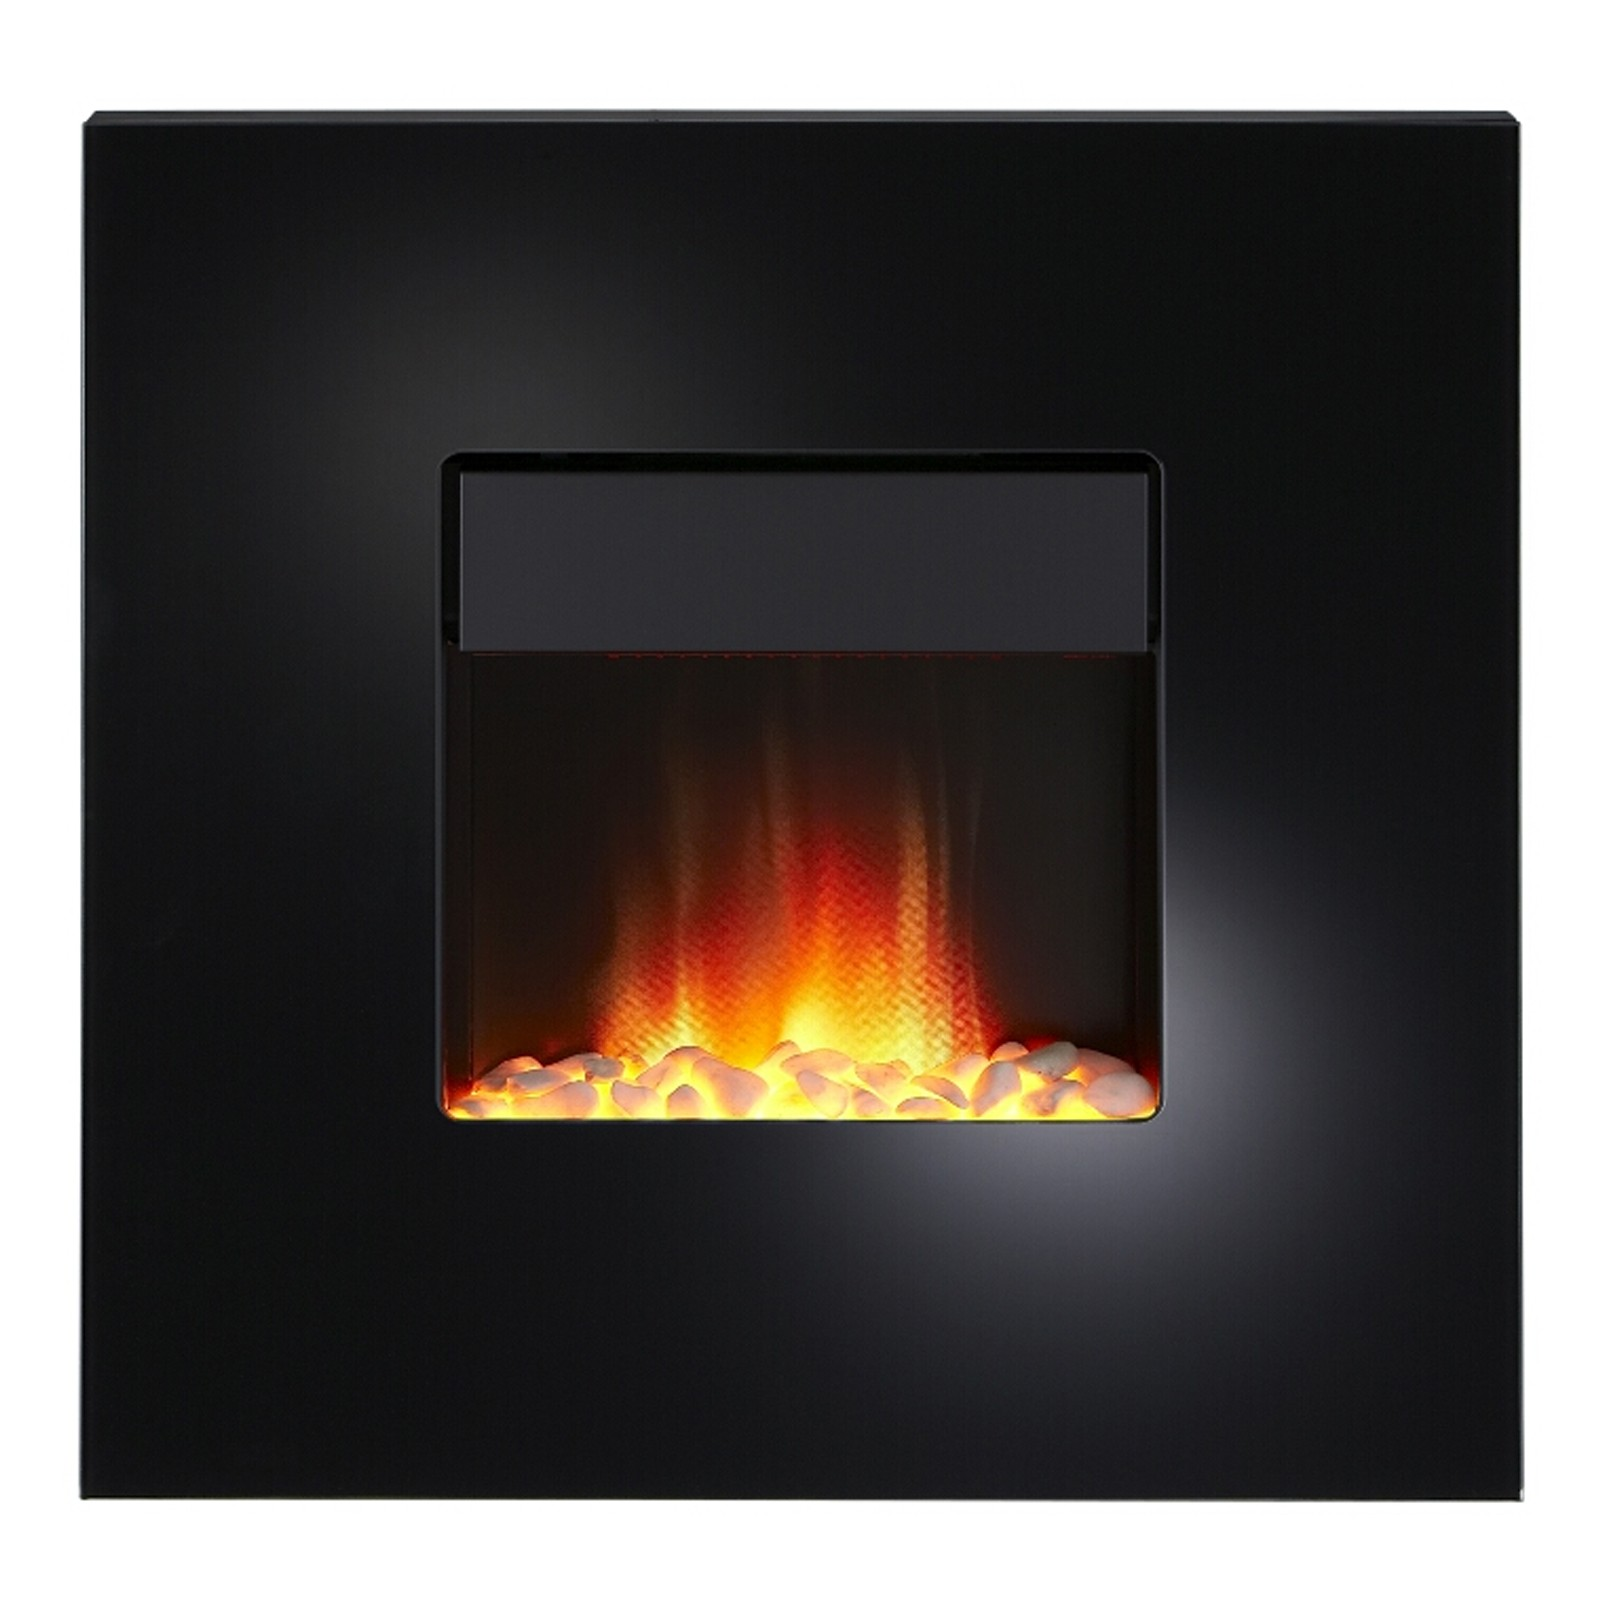 Contempary Fire Valor Brooklyn Led Longlite Wall Mounted